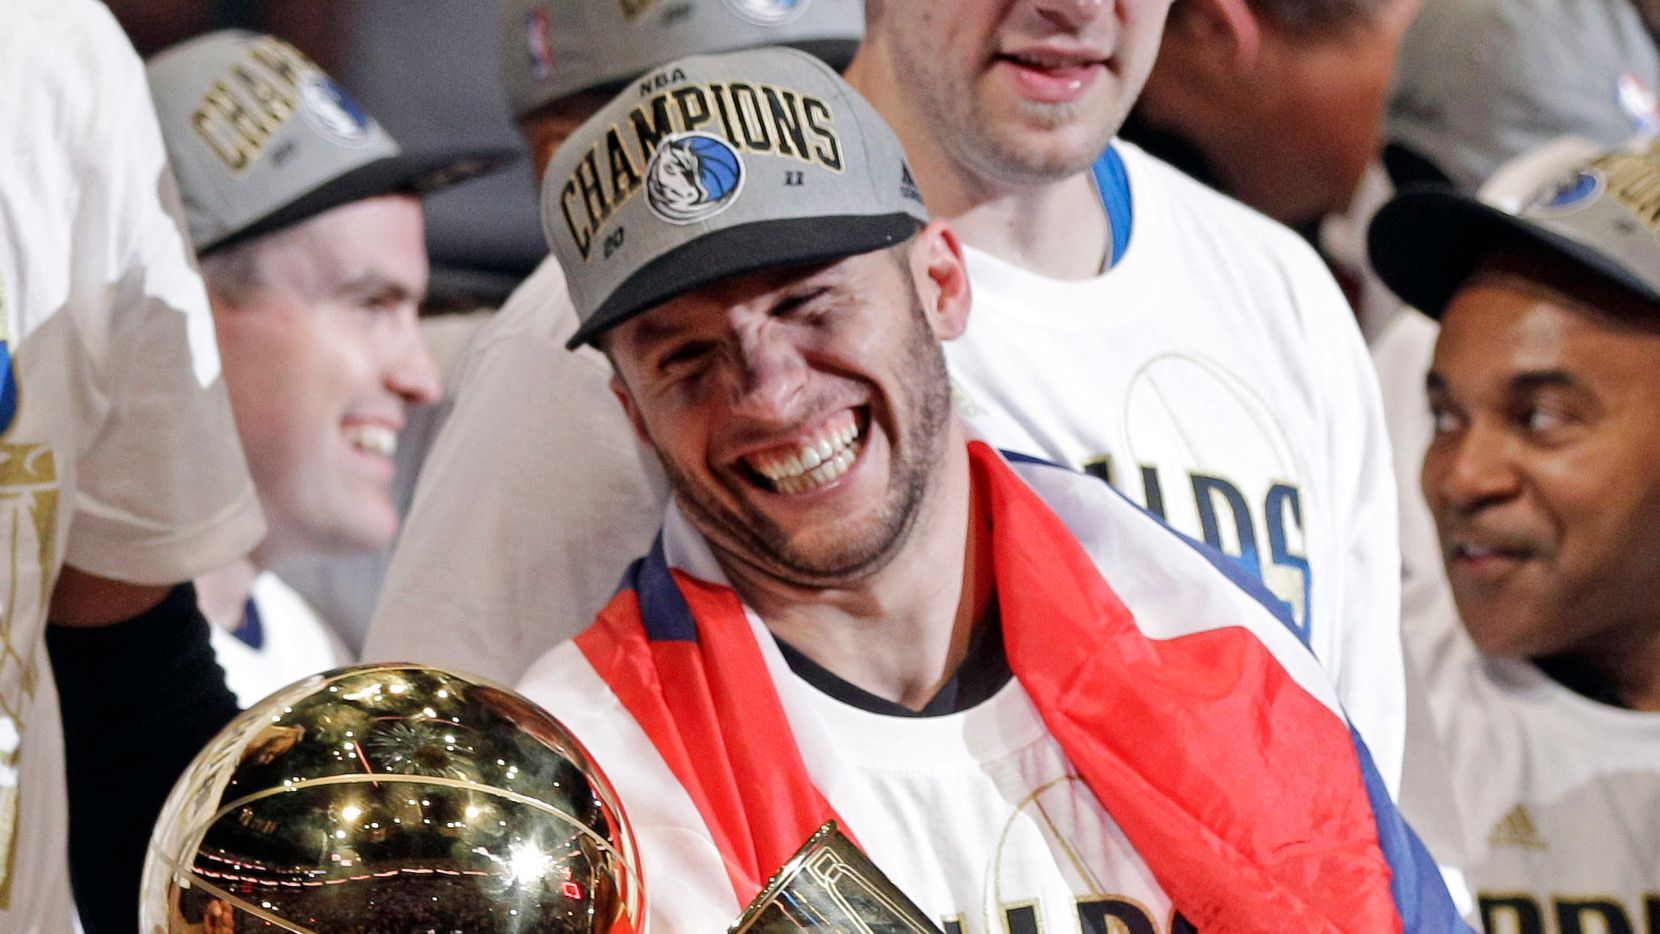 Dallas Mavericks' Jose Juan Barea holds up the championship trophy after Game 6 of the NBA Finals basketball game against the Dallas Mavericks Sunday, June 12, 2011, in Miami. The Mavericks won 105-95 to win the series.